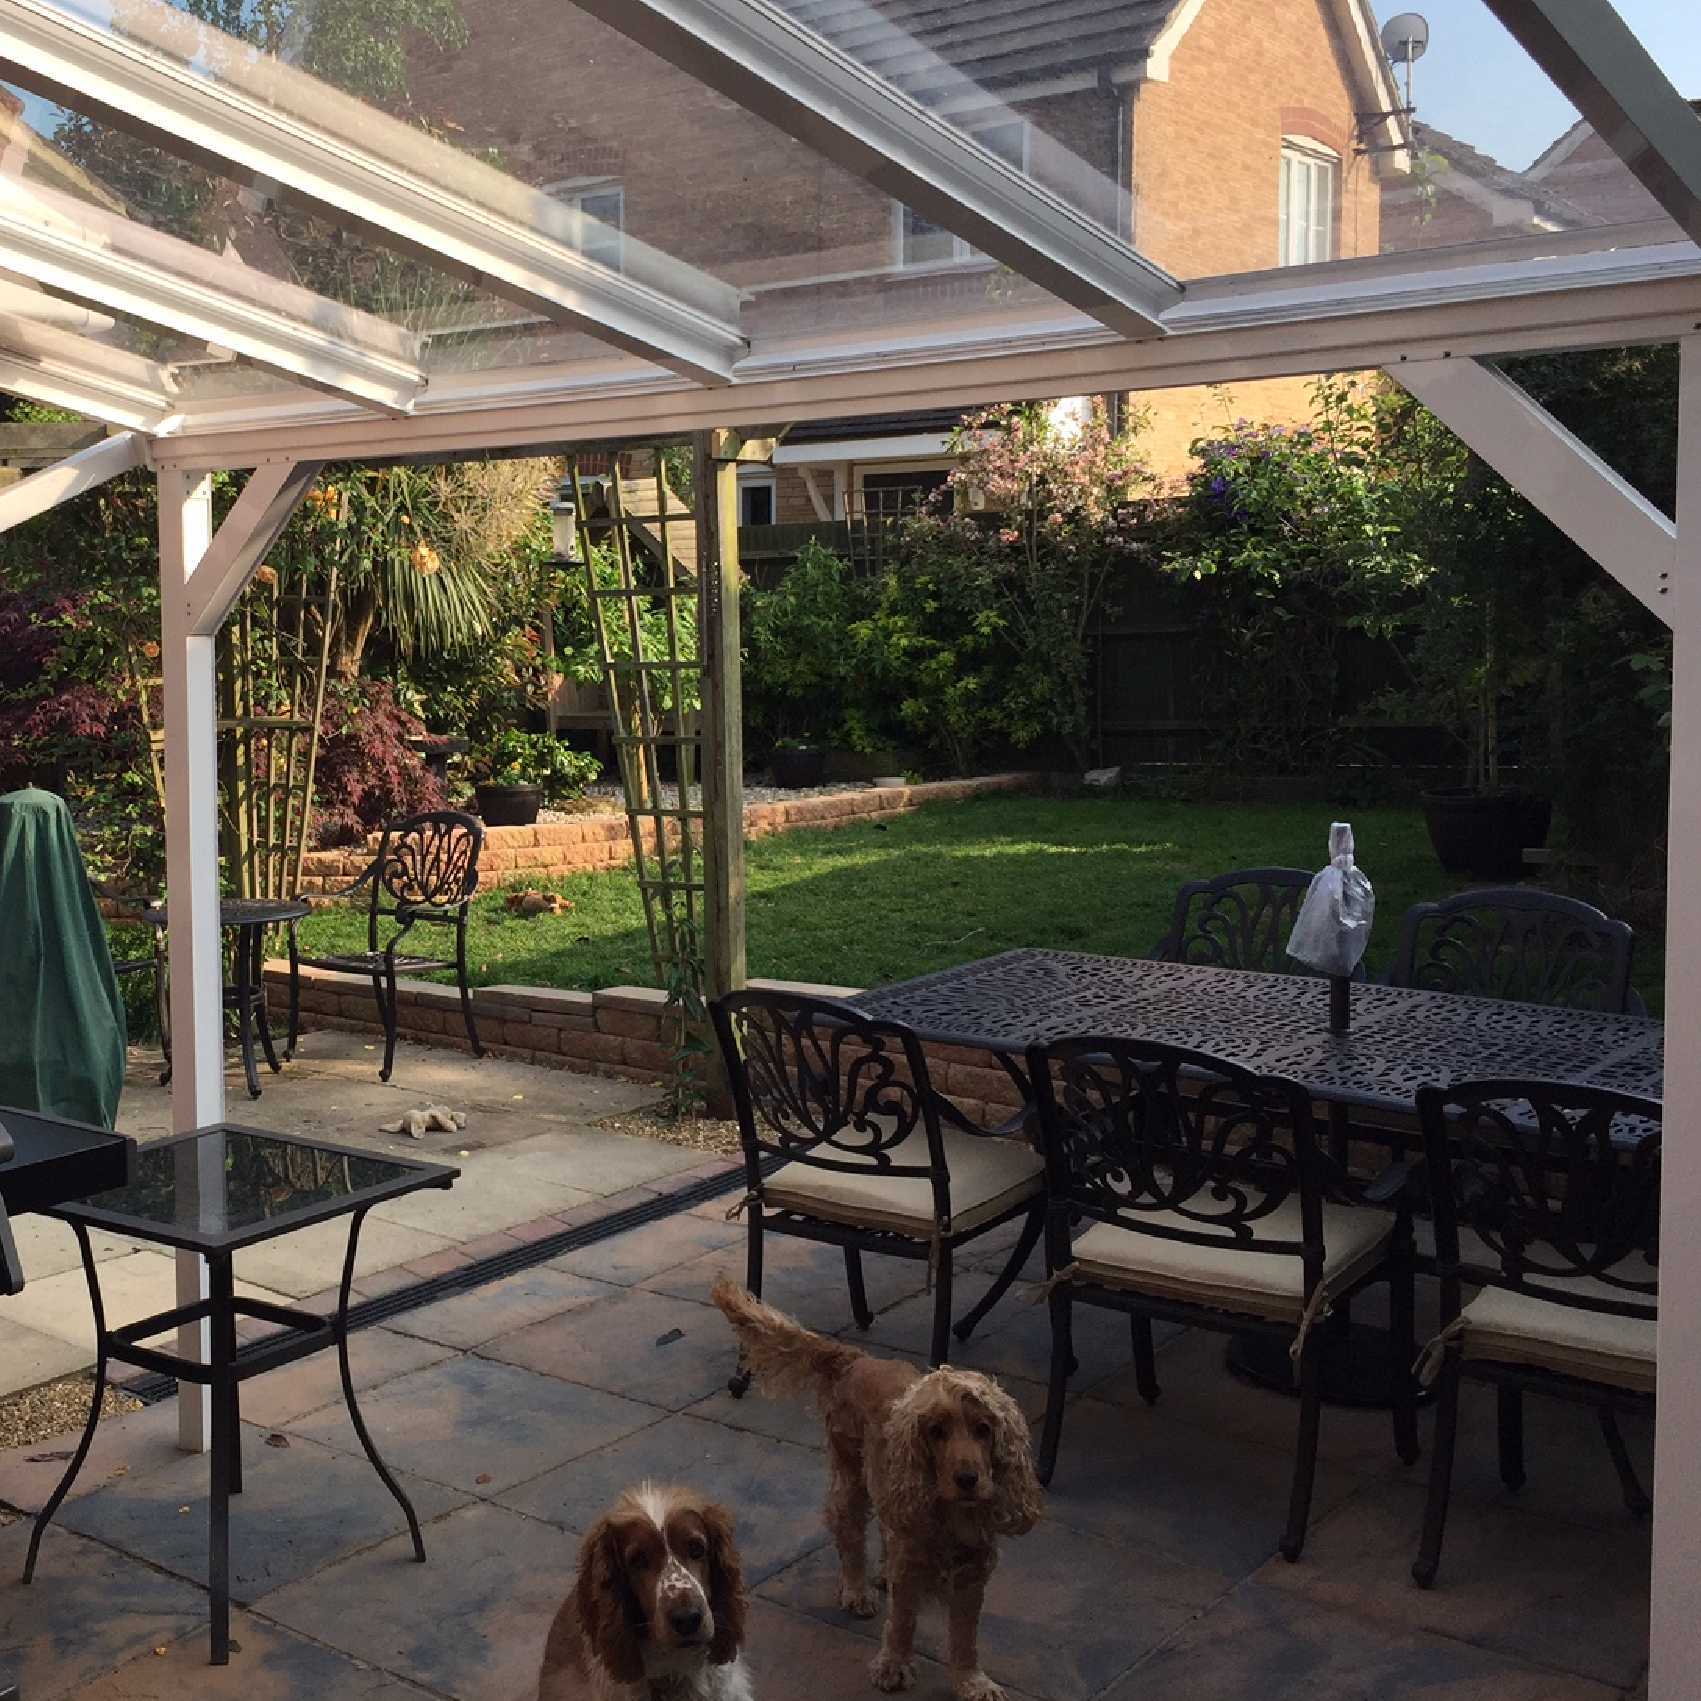 Affordable Omega Smart White Lean-To Canopy UNGLAZED for 6mm Glazing - 9.1m (W) x 2.5m (P), (5) Supporting Posts